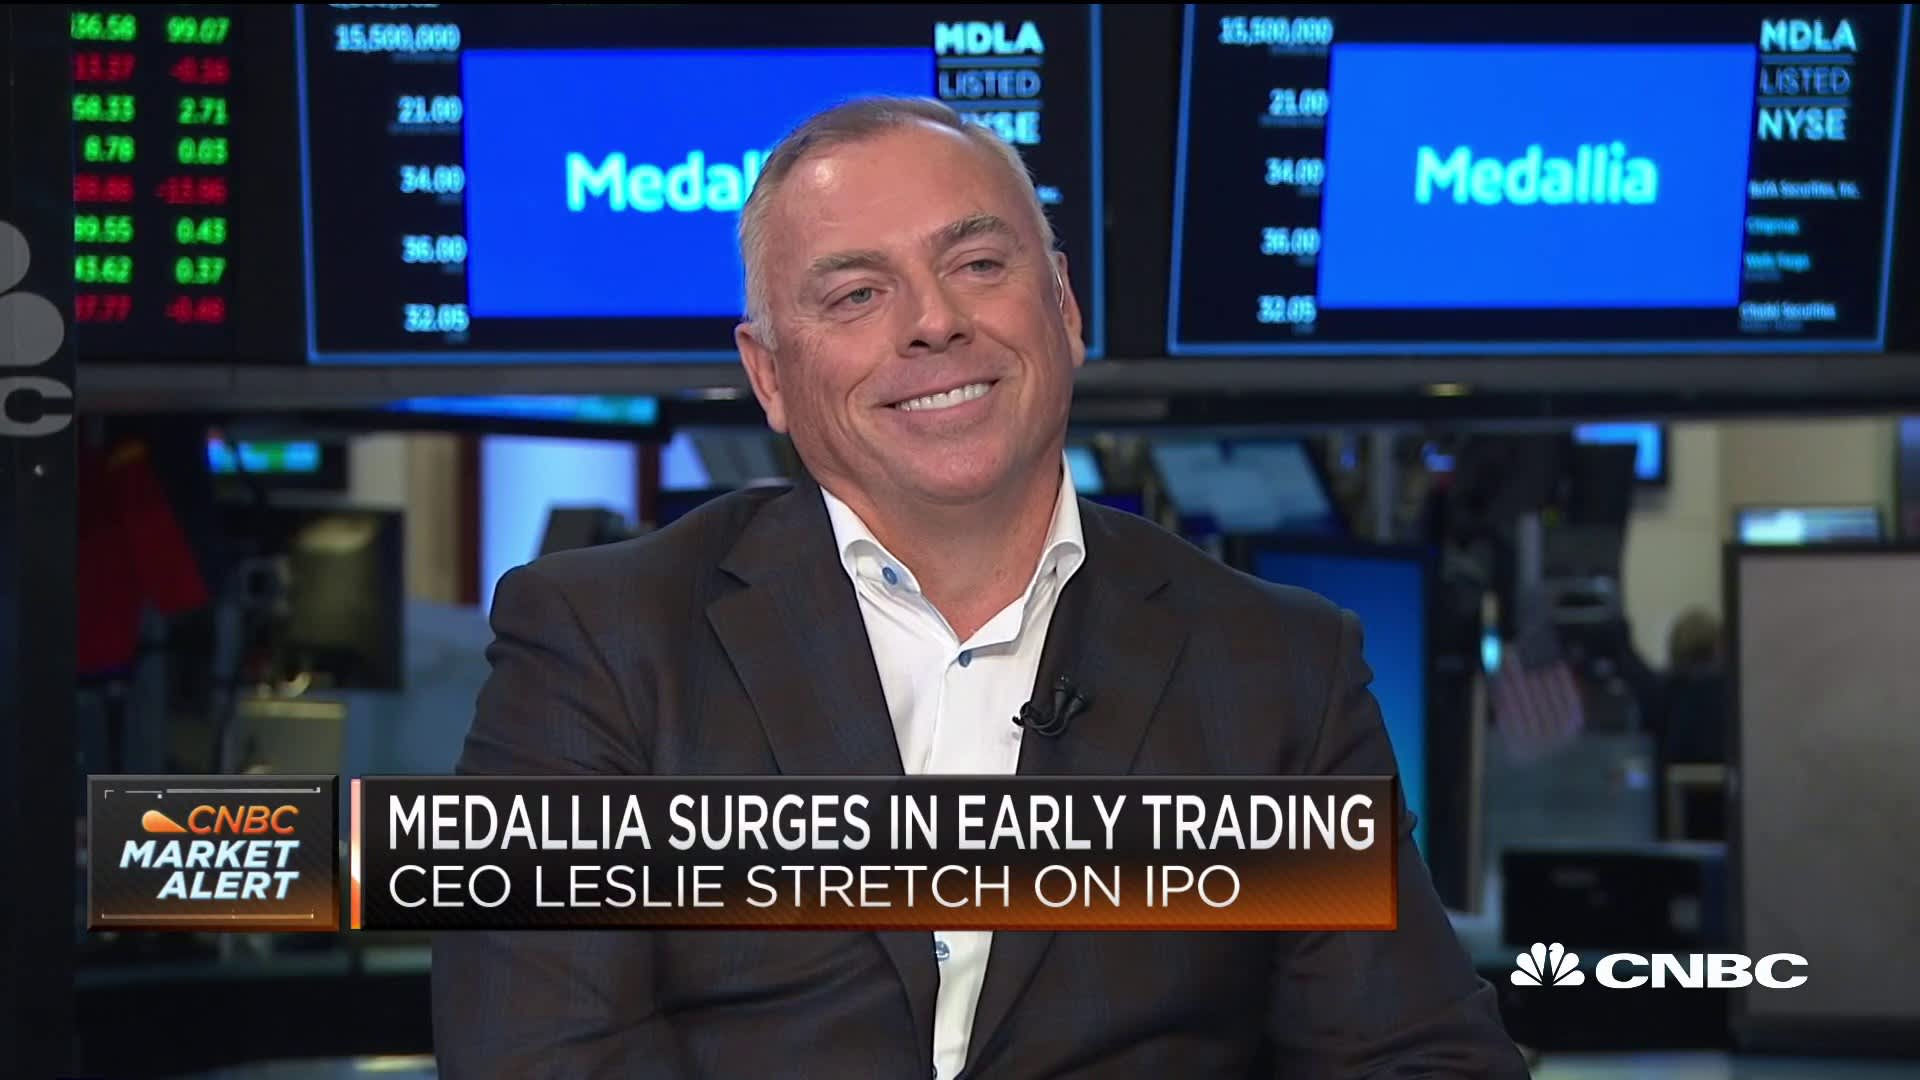 Medallia soars more than 70% in market debut as investors flock to another cloud software IPO